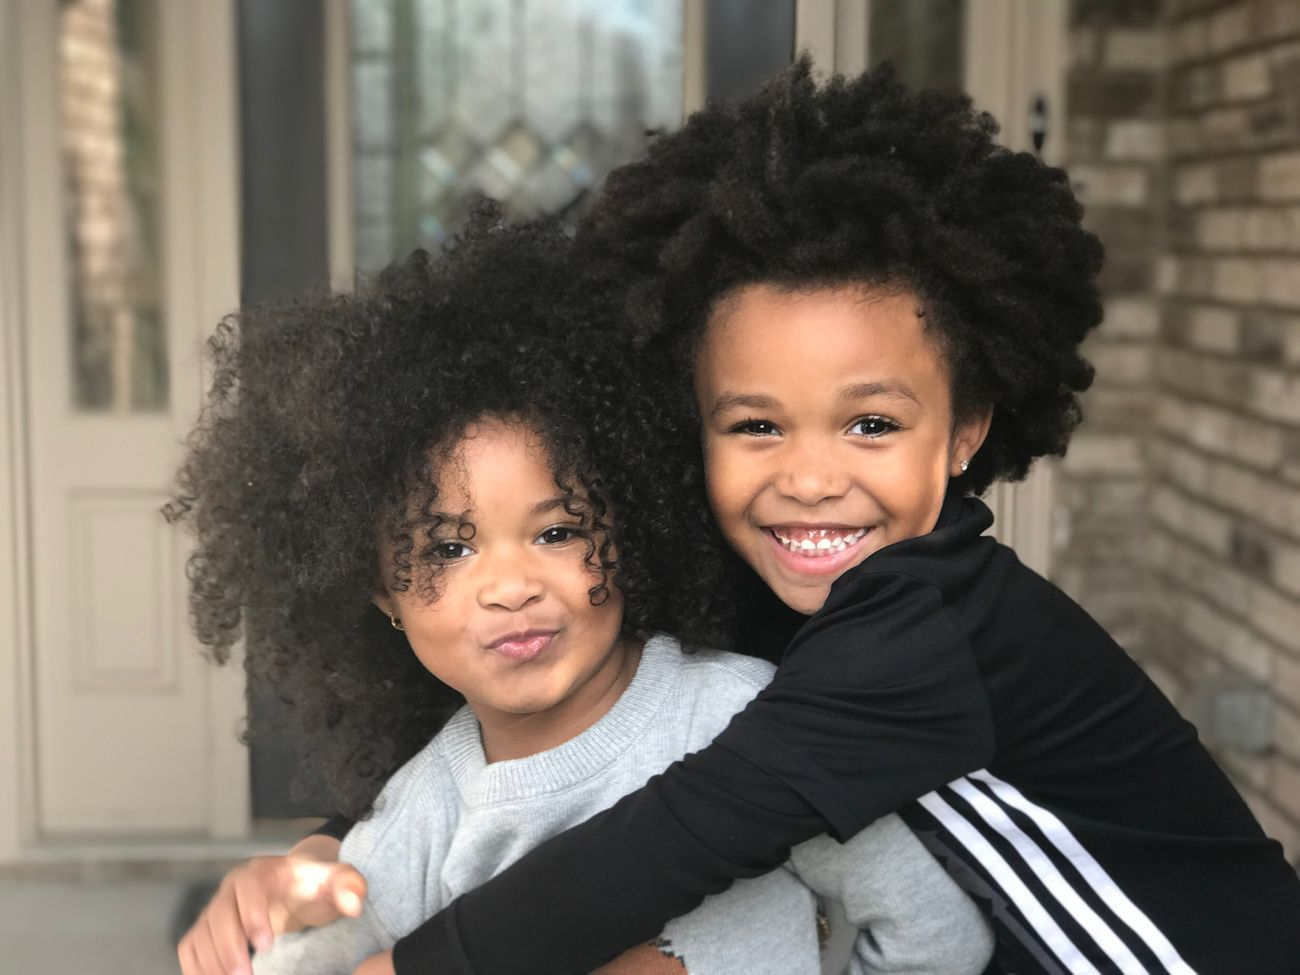 #TurnUps Turnuptwins Cutekids Big Brother Little SisterCurly Hair Happiness Togetherness Actor Family Headshot Child Smiling Portrait Close-up